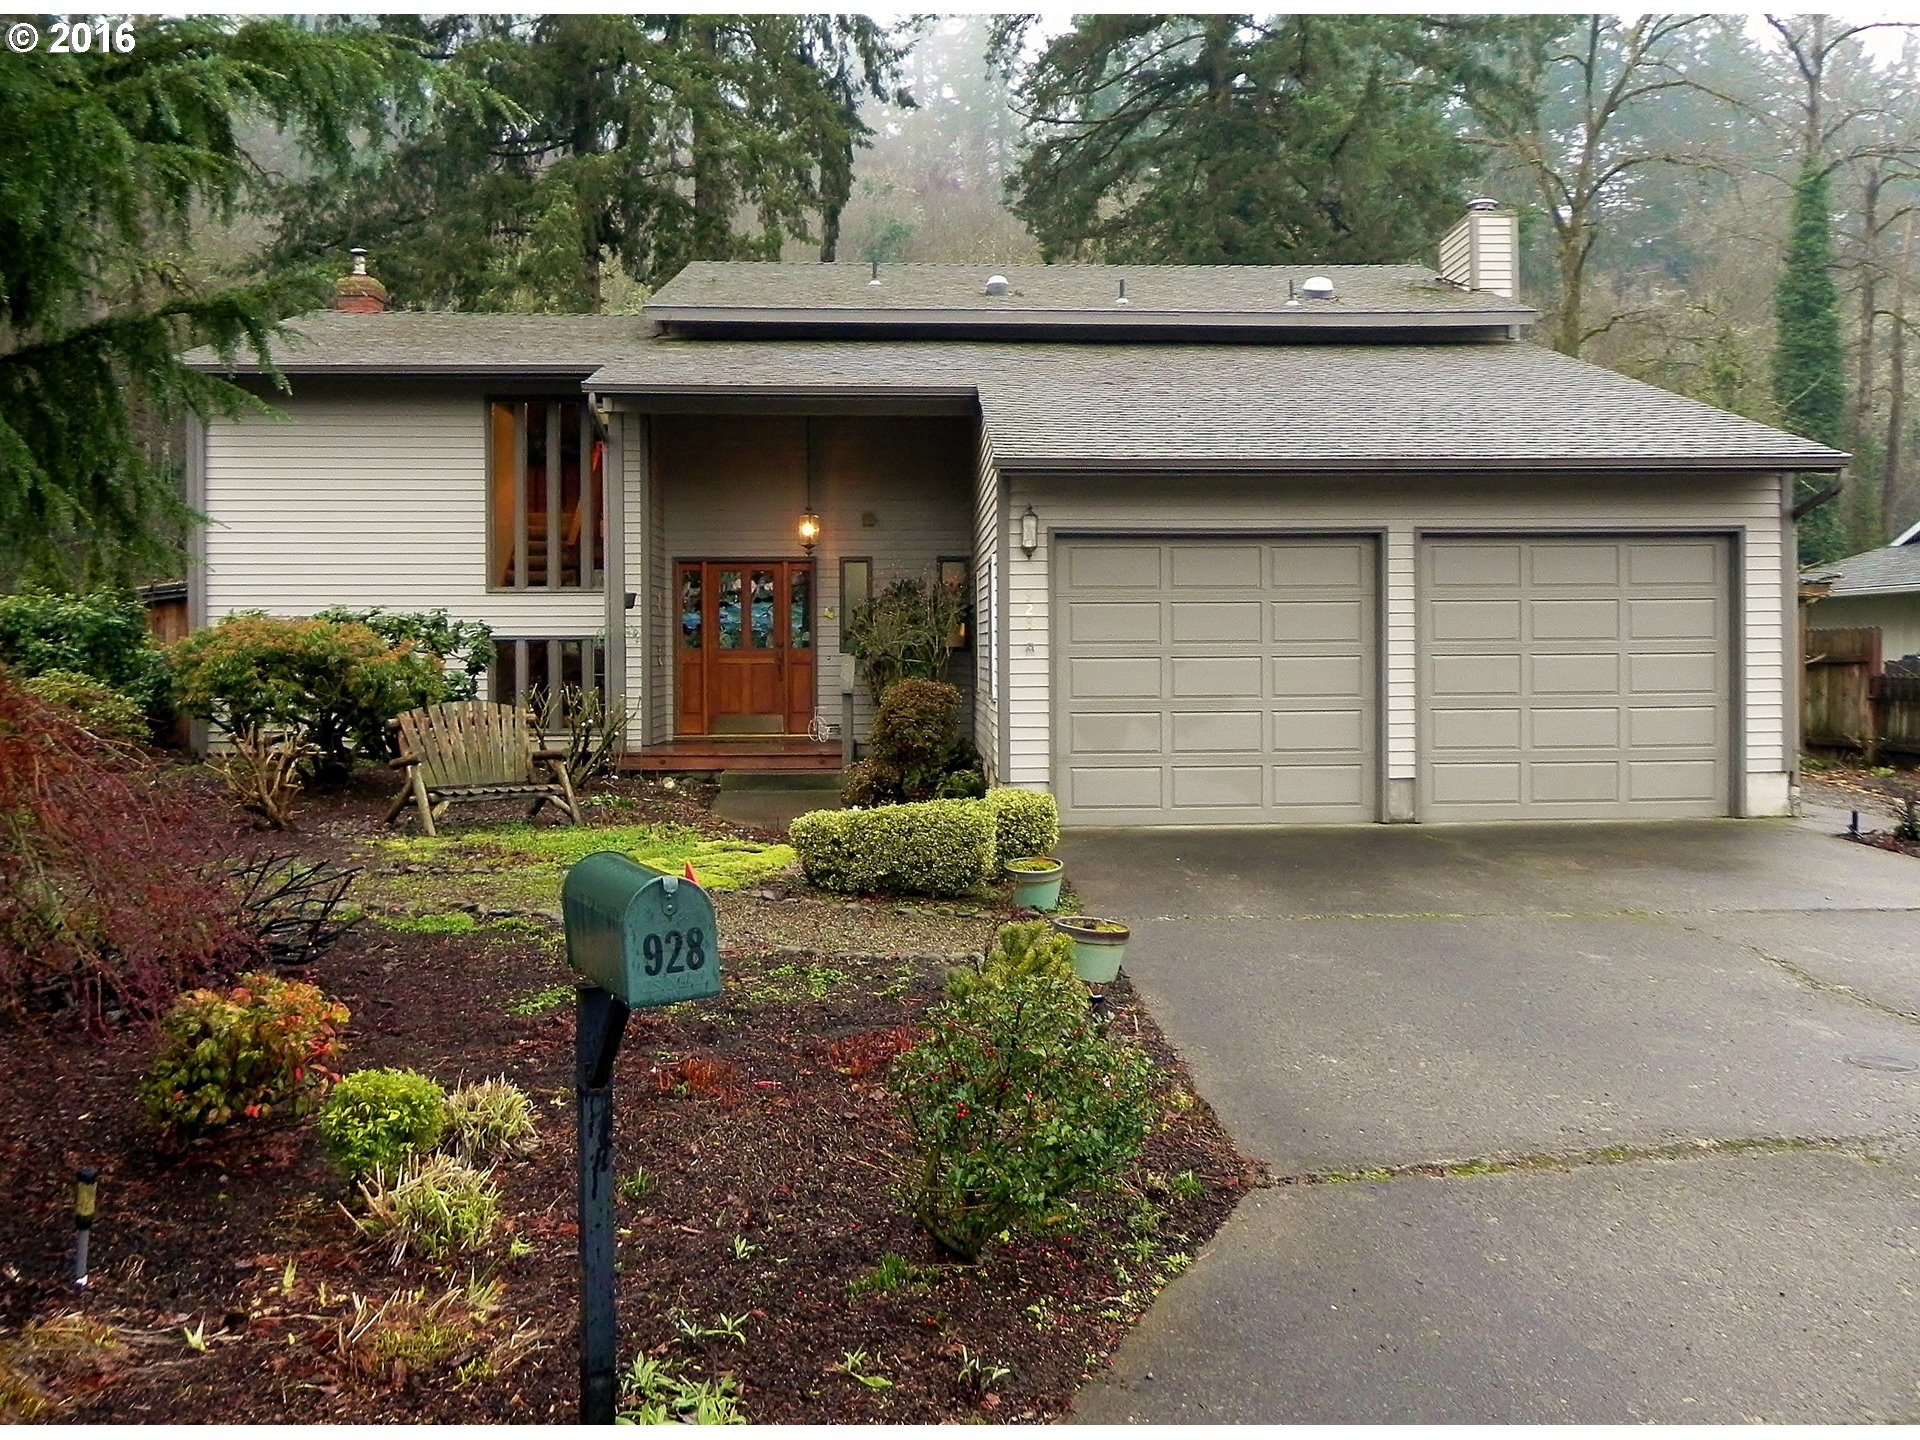 928 Barger St, Silverton, OR